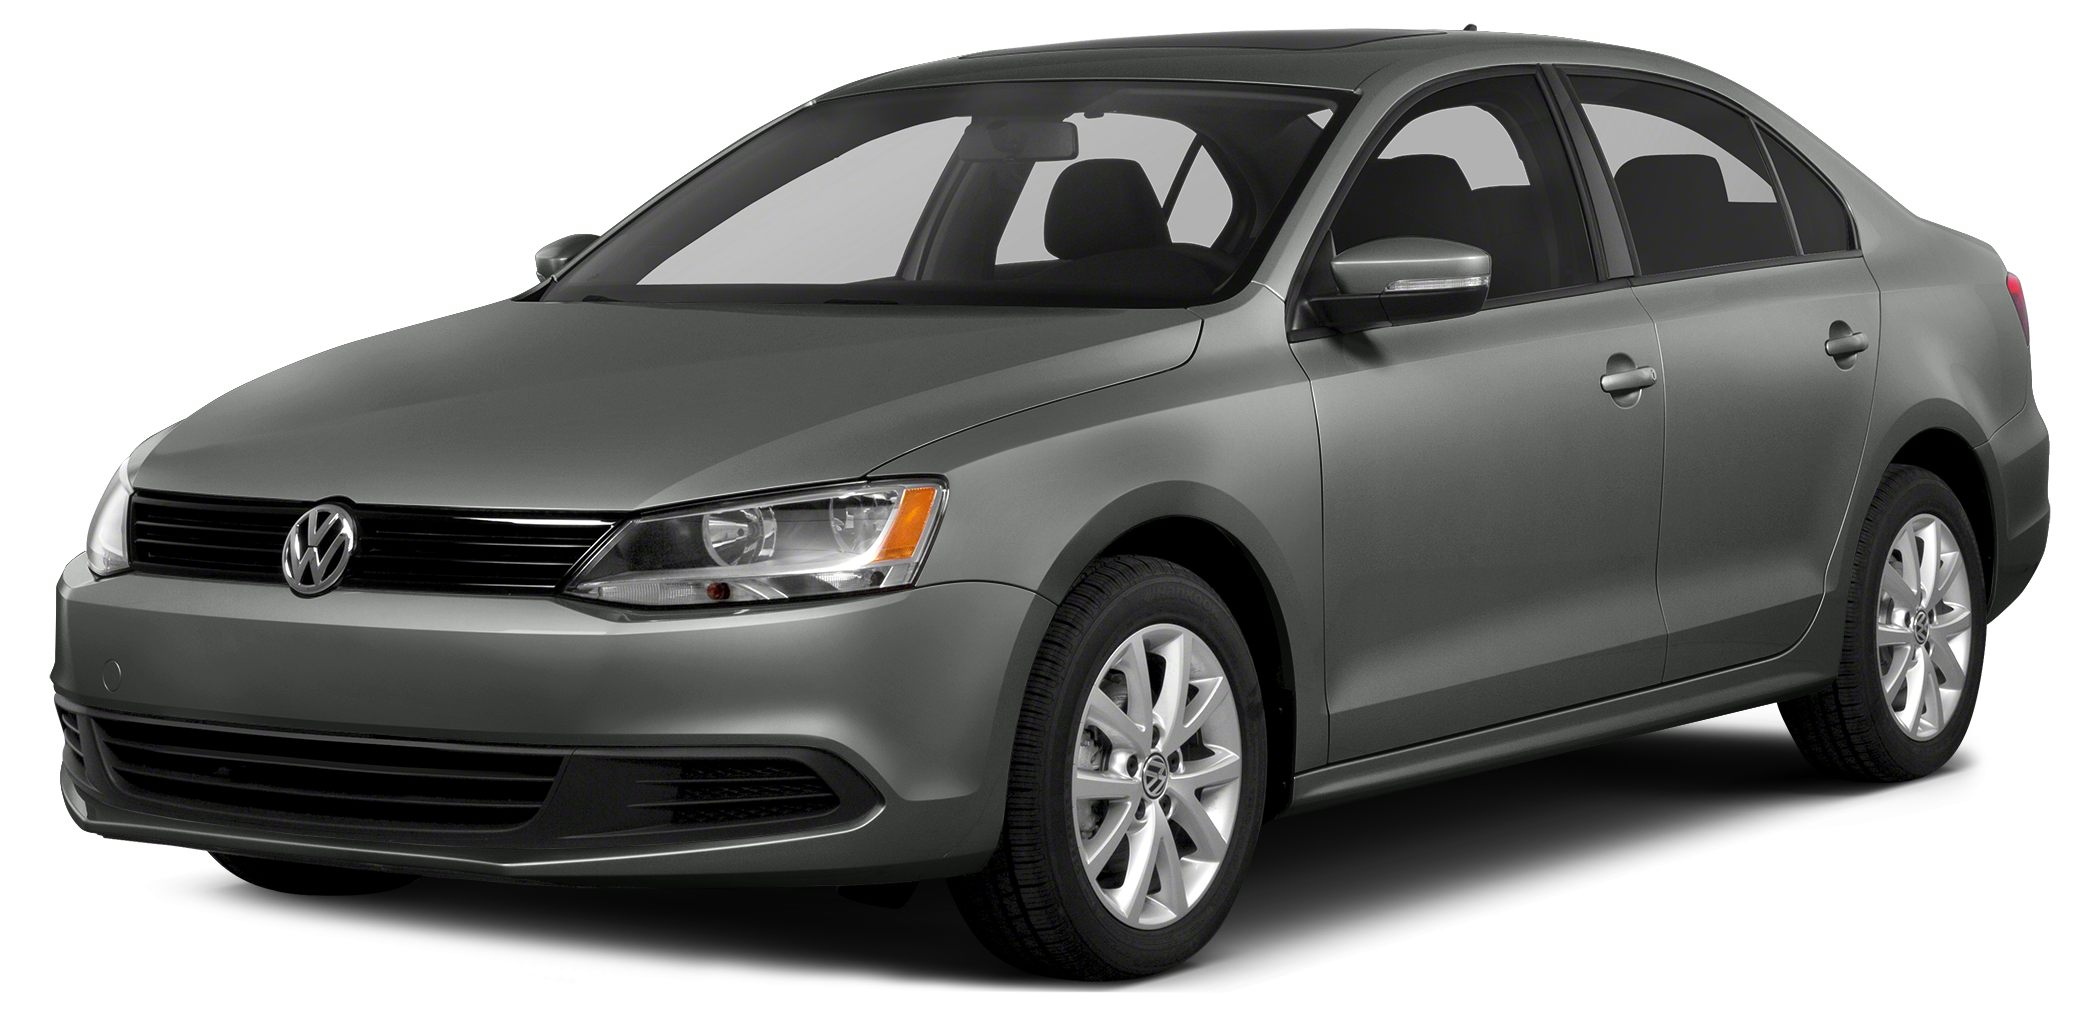 2014 Volkswagen Jetta 20 S WE SELL OUR VEHICLES AT WHOLESALE PRICES AND STAND BEHIND OUR CARS